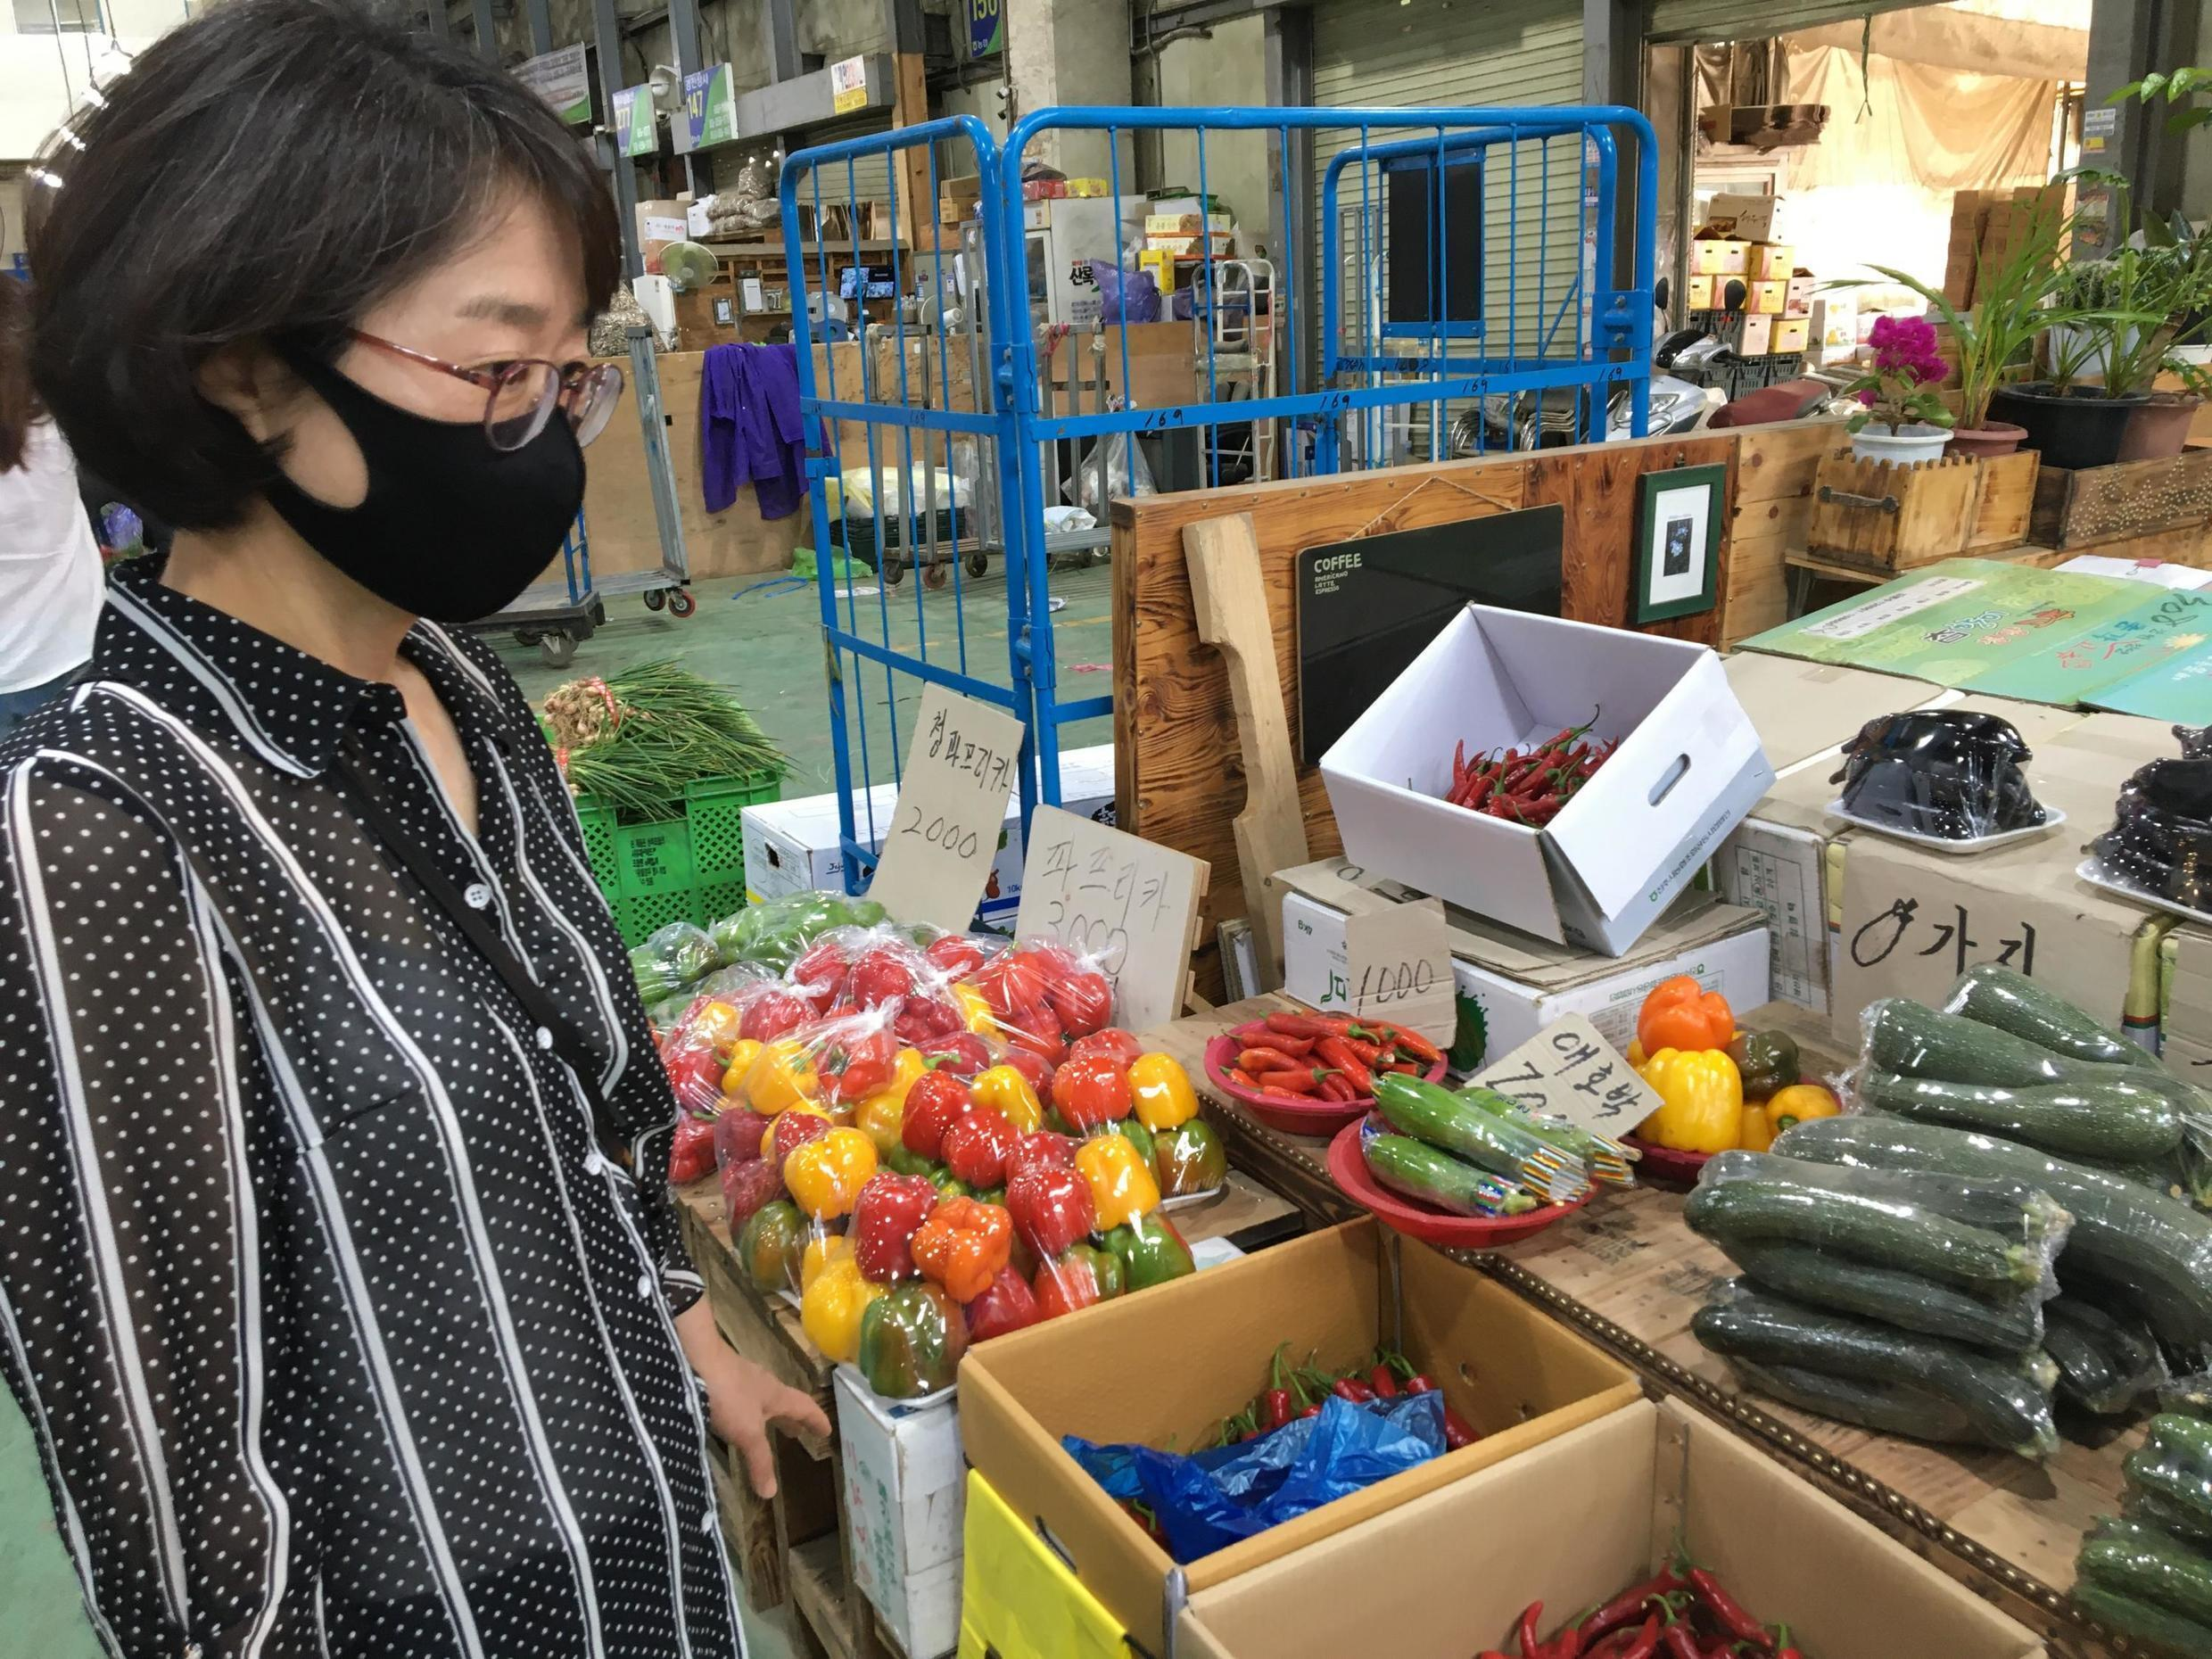 Nam Kyung-hee visite le marché.